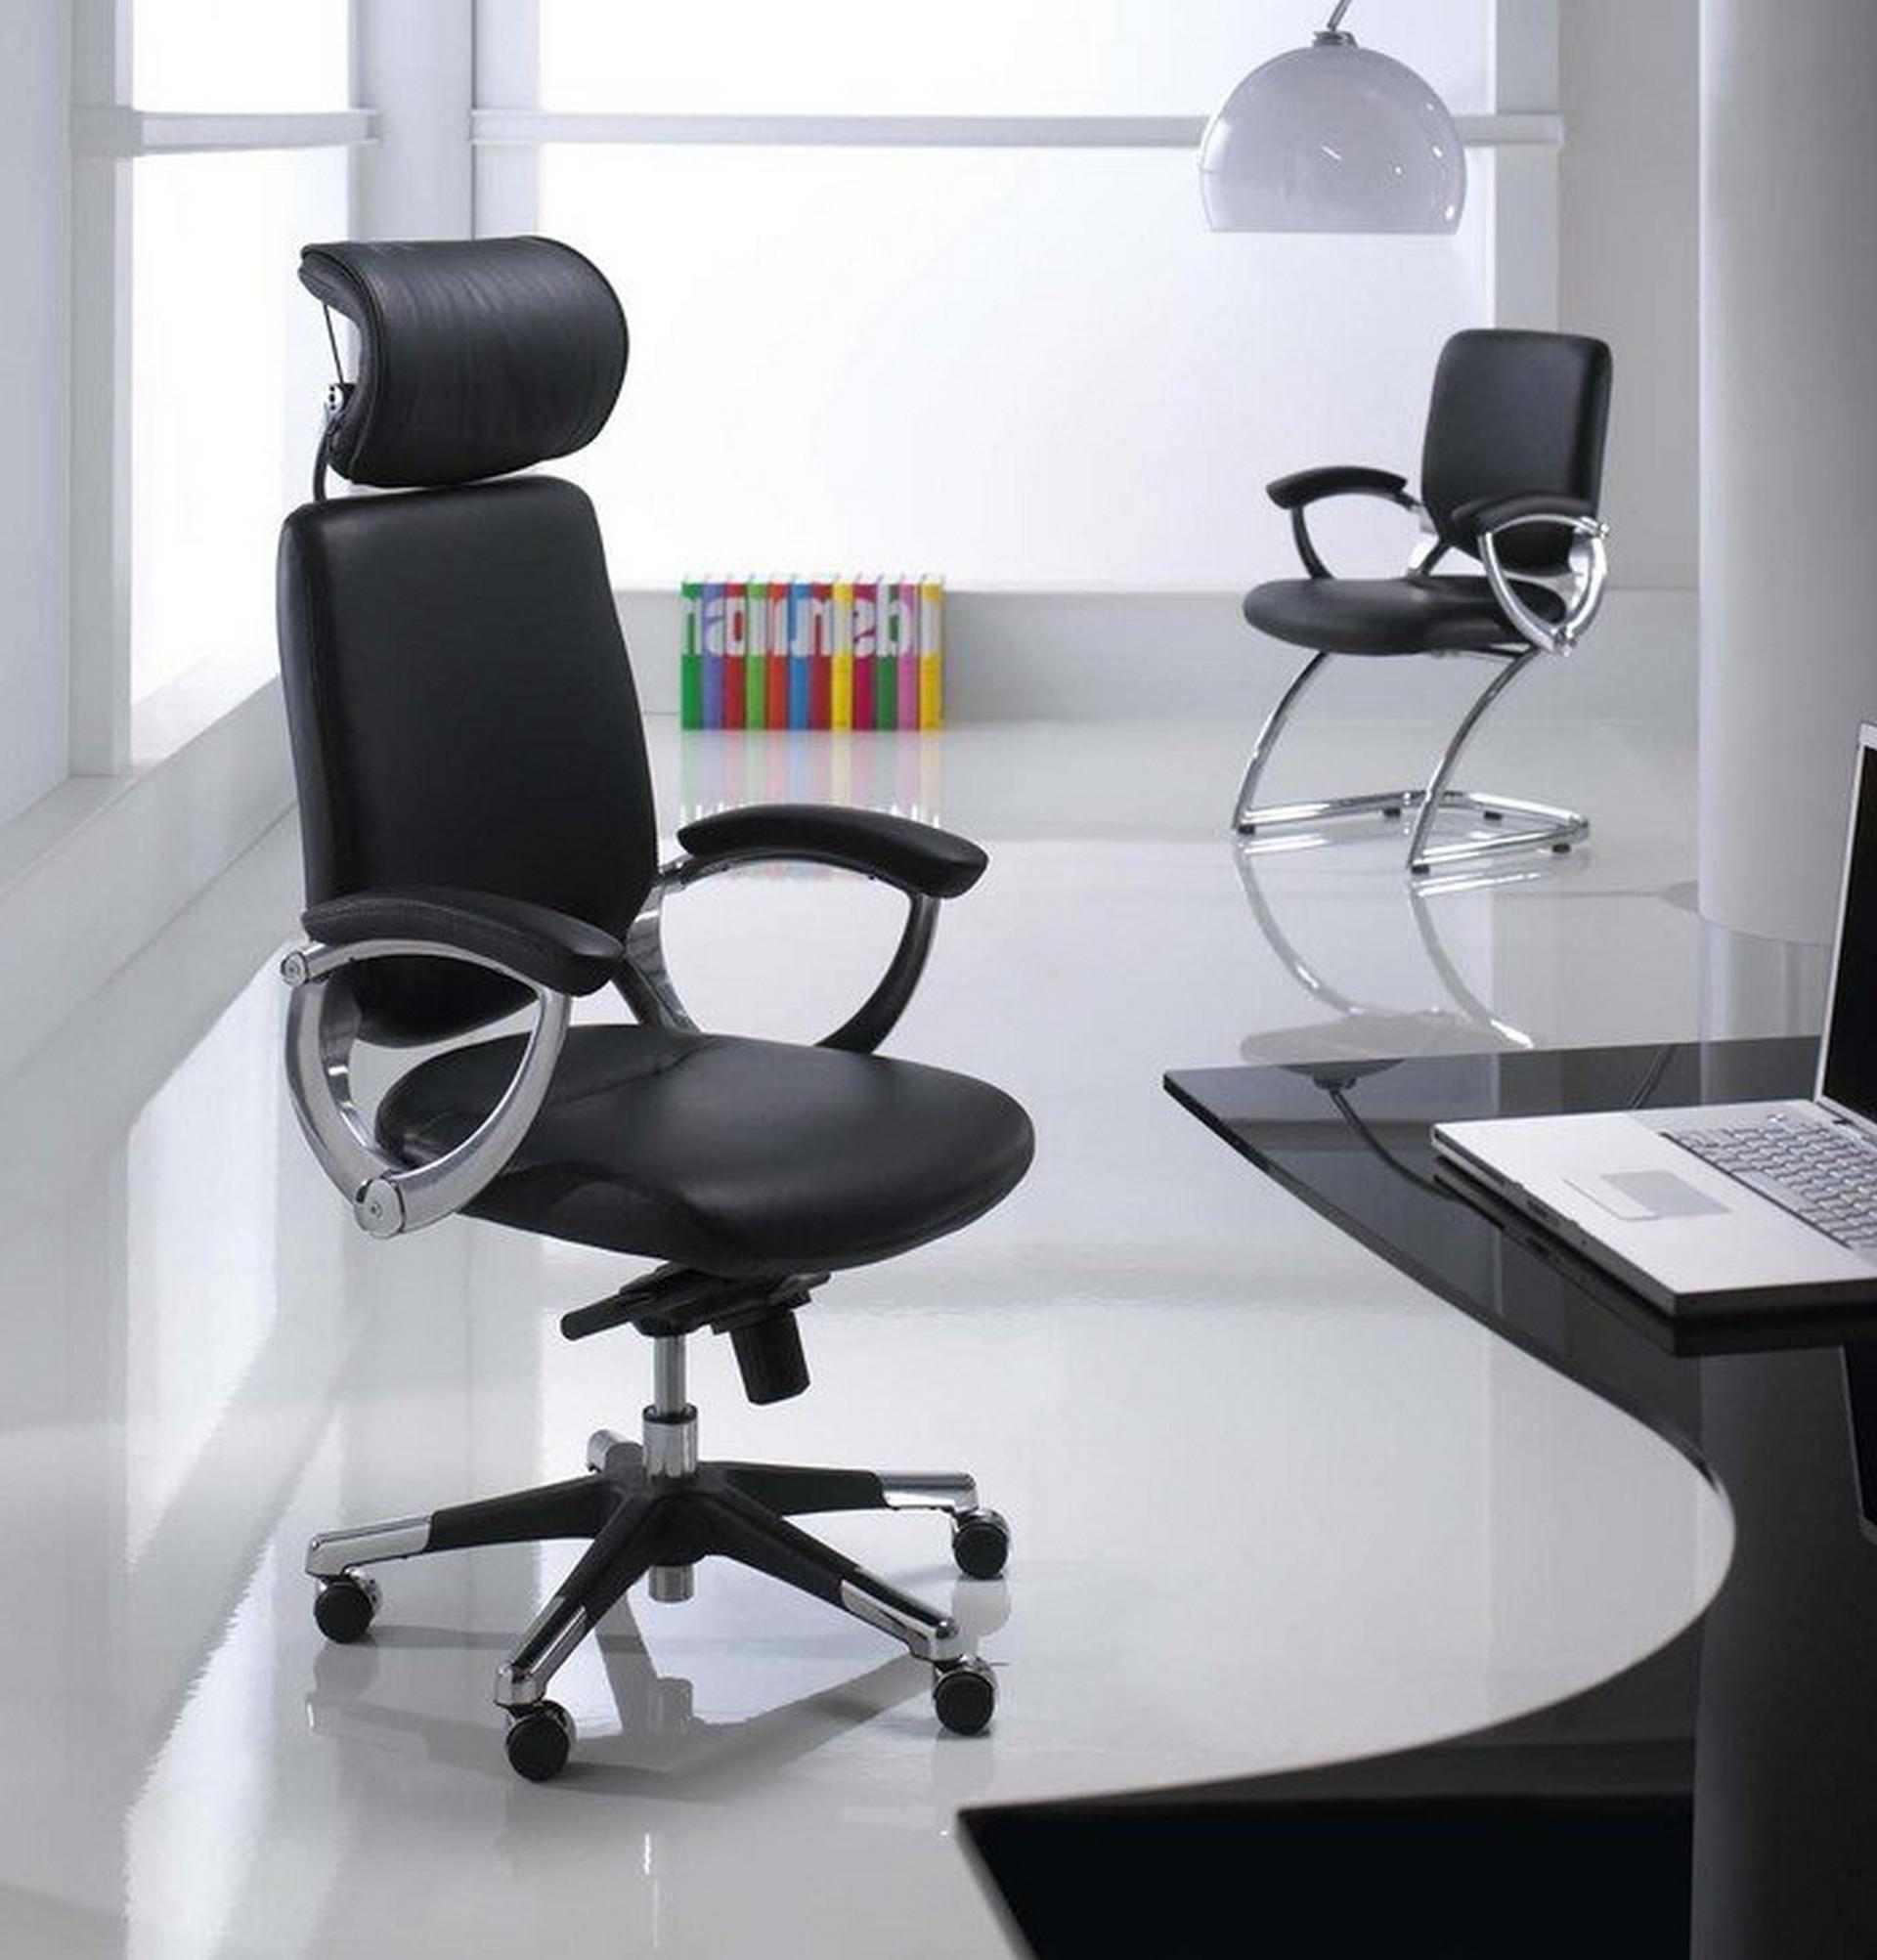 Most comfortable computer chair - Stunning Office Chair Design In Modern Office Furniture